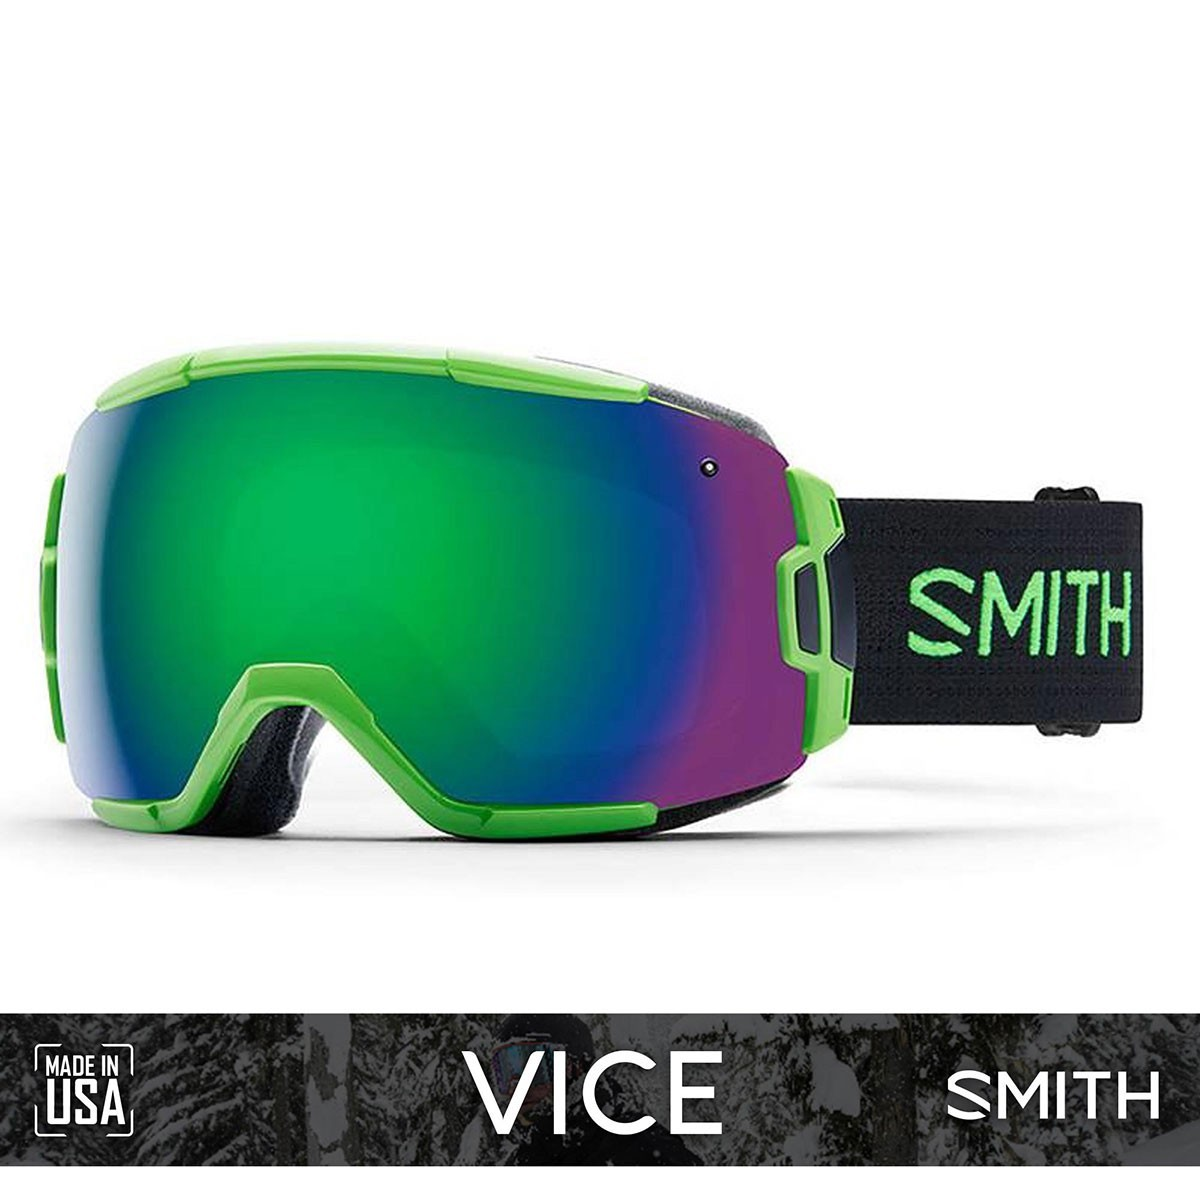 SMITH VICE Reactor | S3 GREEN SOL-X Mirror - Изображение - AQUAMATRIX